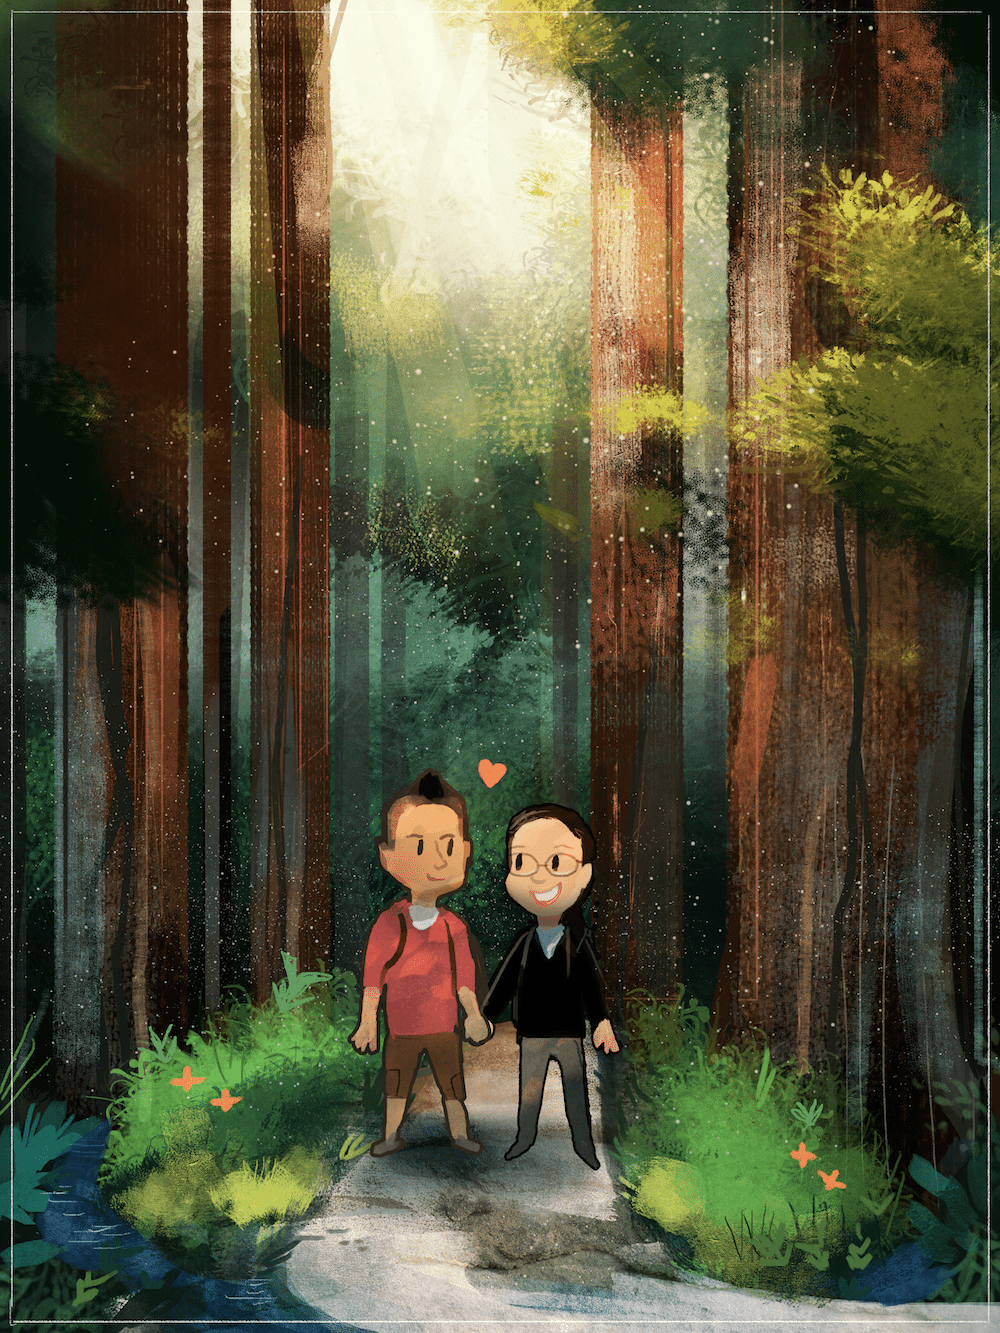 The Muir Woods Proposal by Louie Zong via ArtCorgi